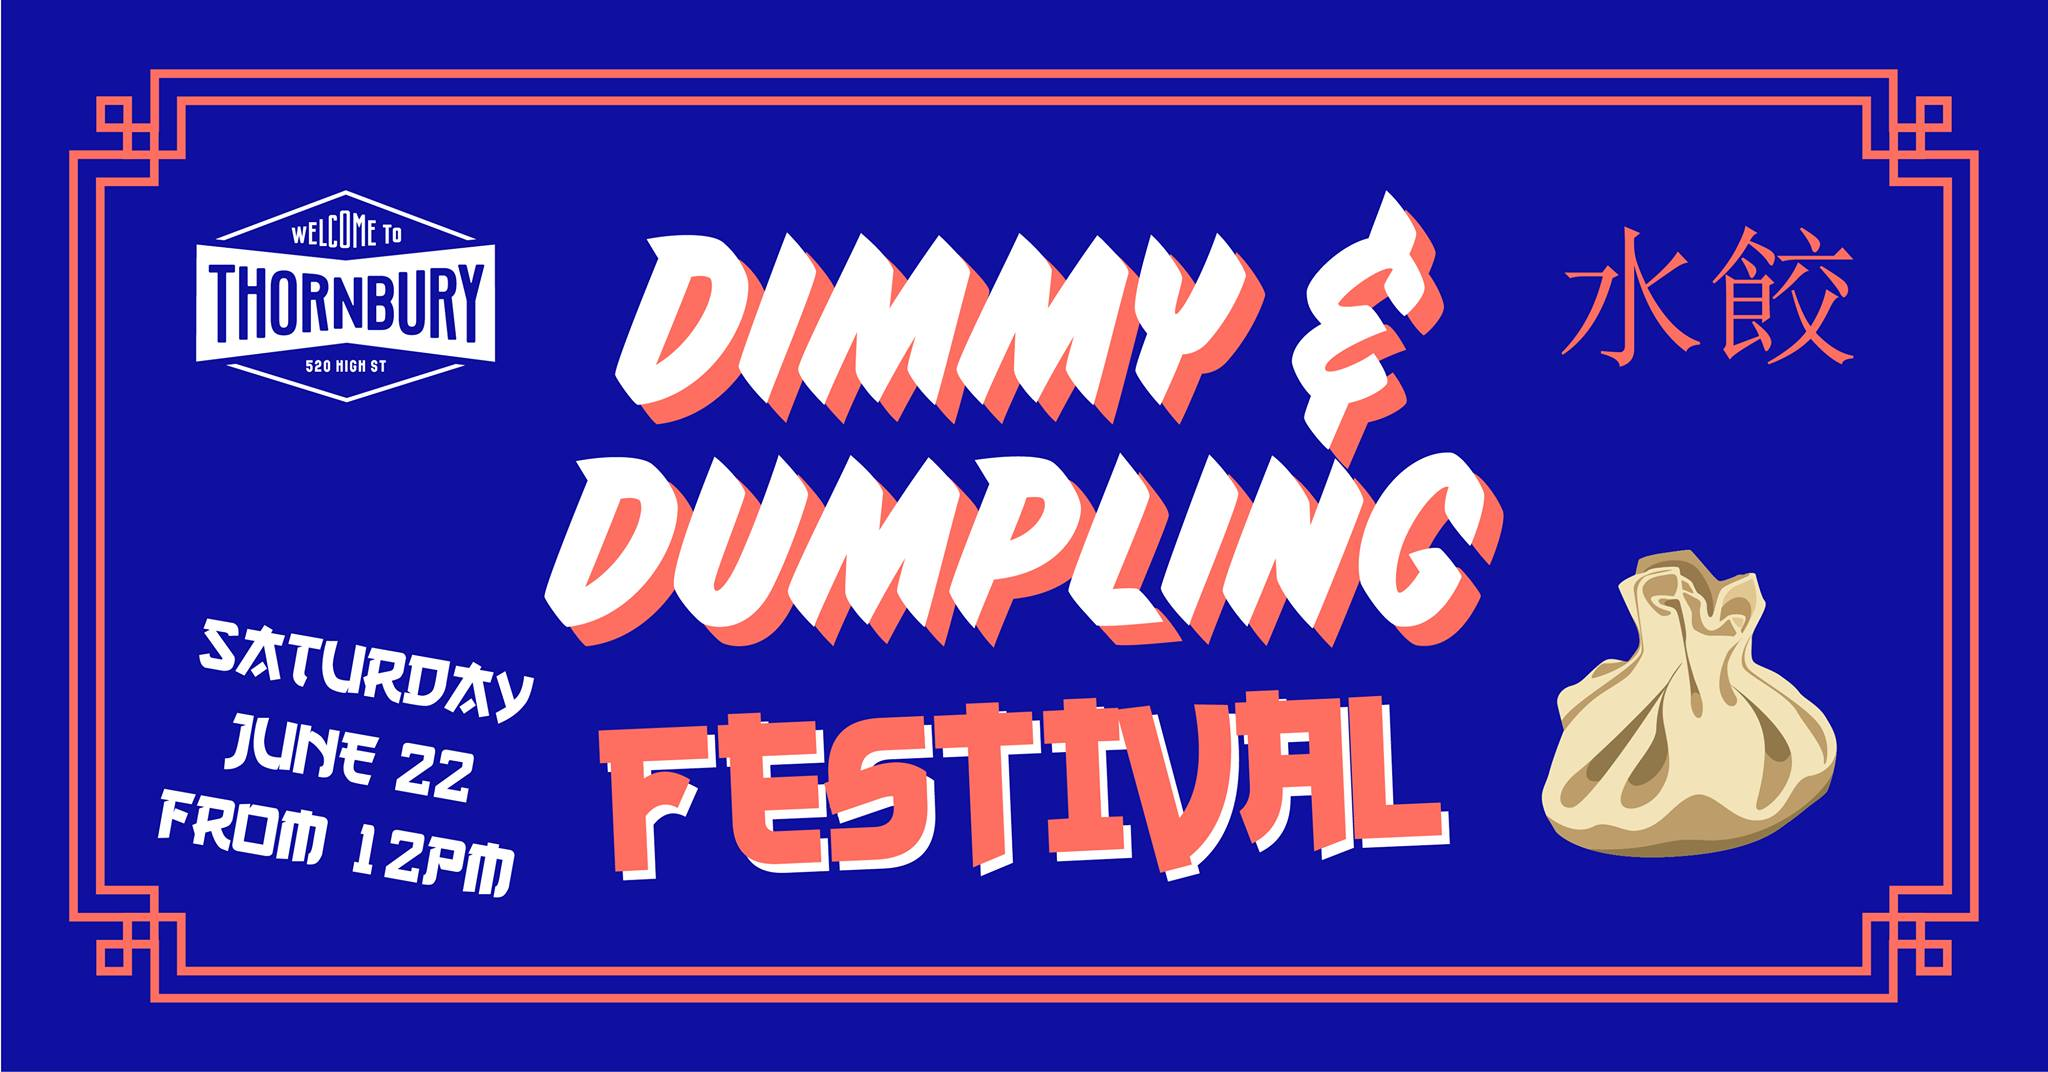 Dimmy and Dumpling Festival